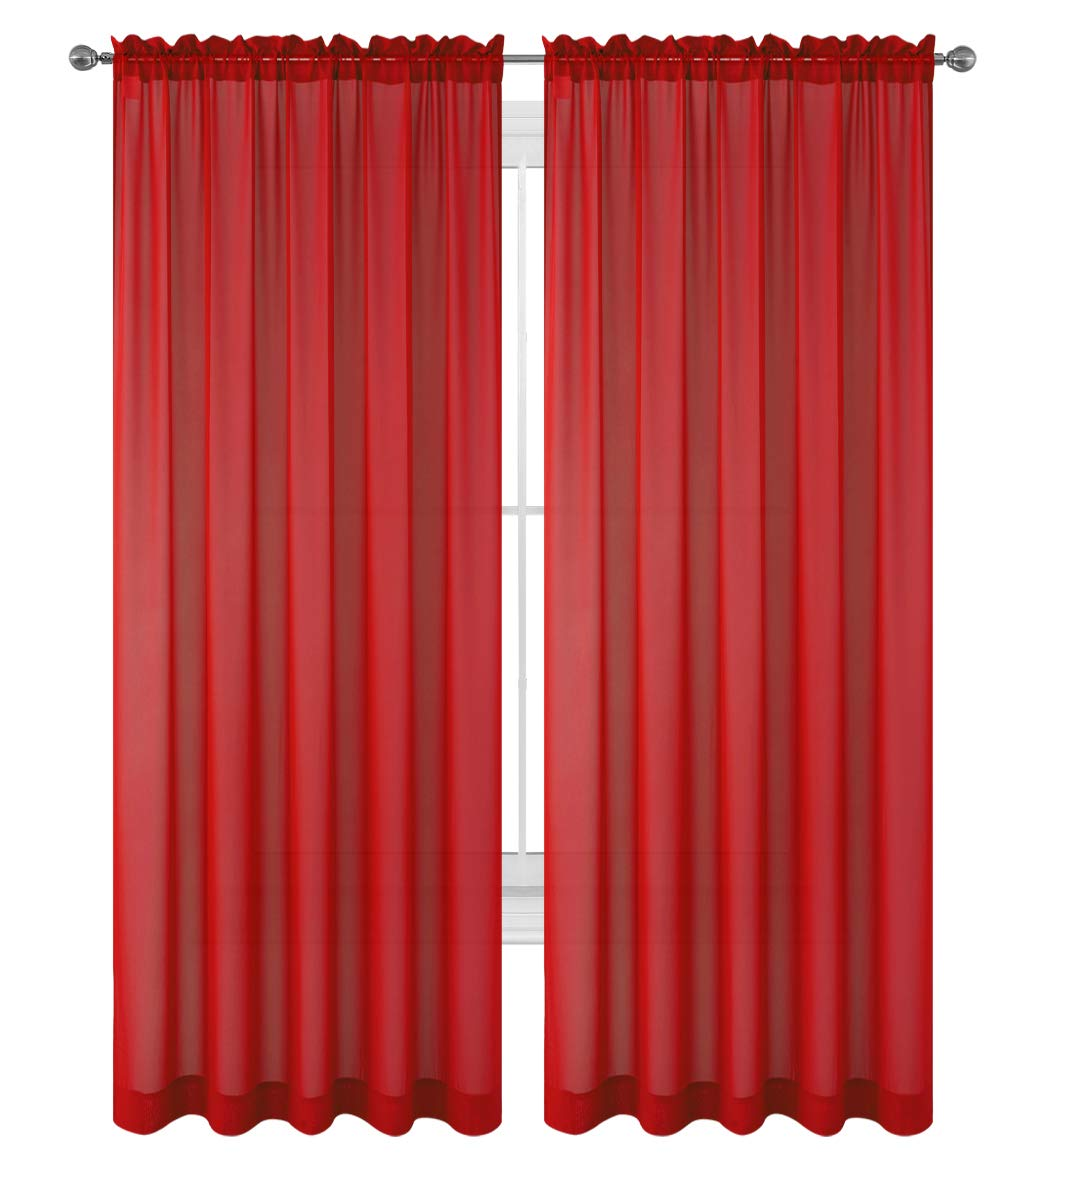 "Drape/Panels/Treatment Beautiful Sheer Voile Window Elegance Curtains for Bedroom & Kitchen, 57"" inch x 84"" inch, Set of 2 (Red)"